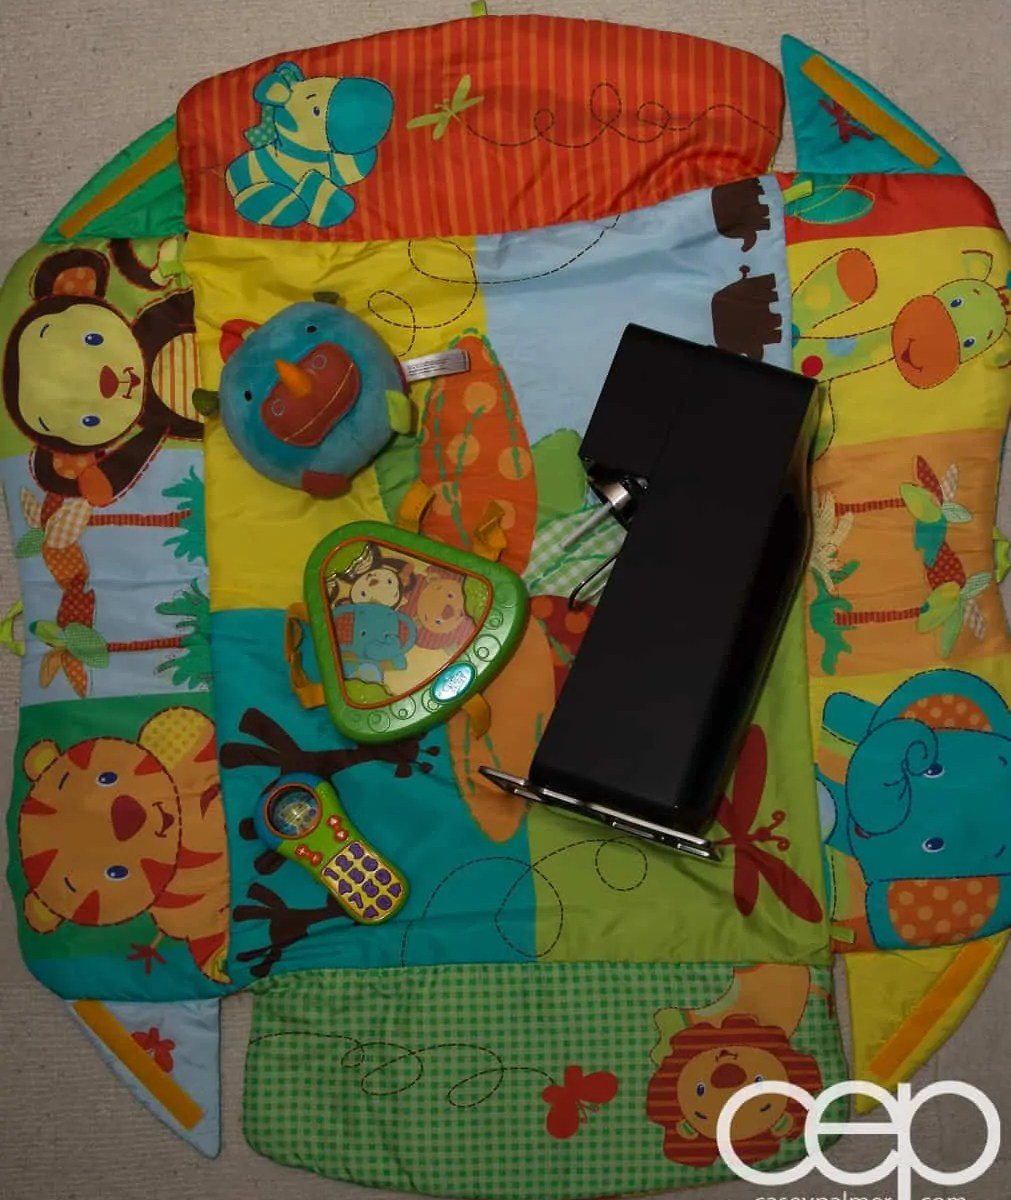 SodaStream at Play — On the Playmat